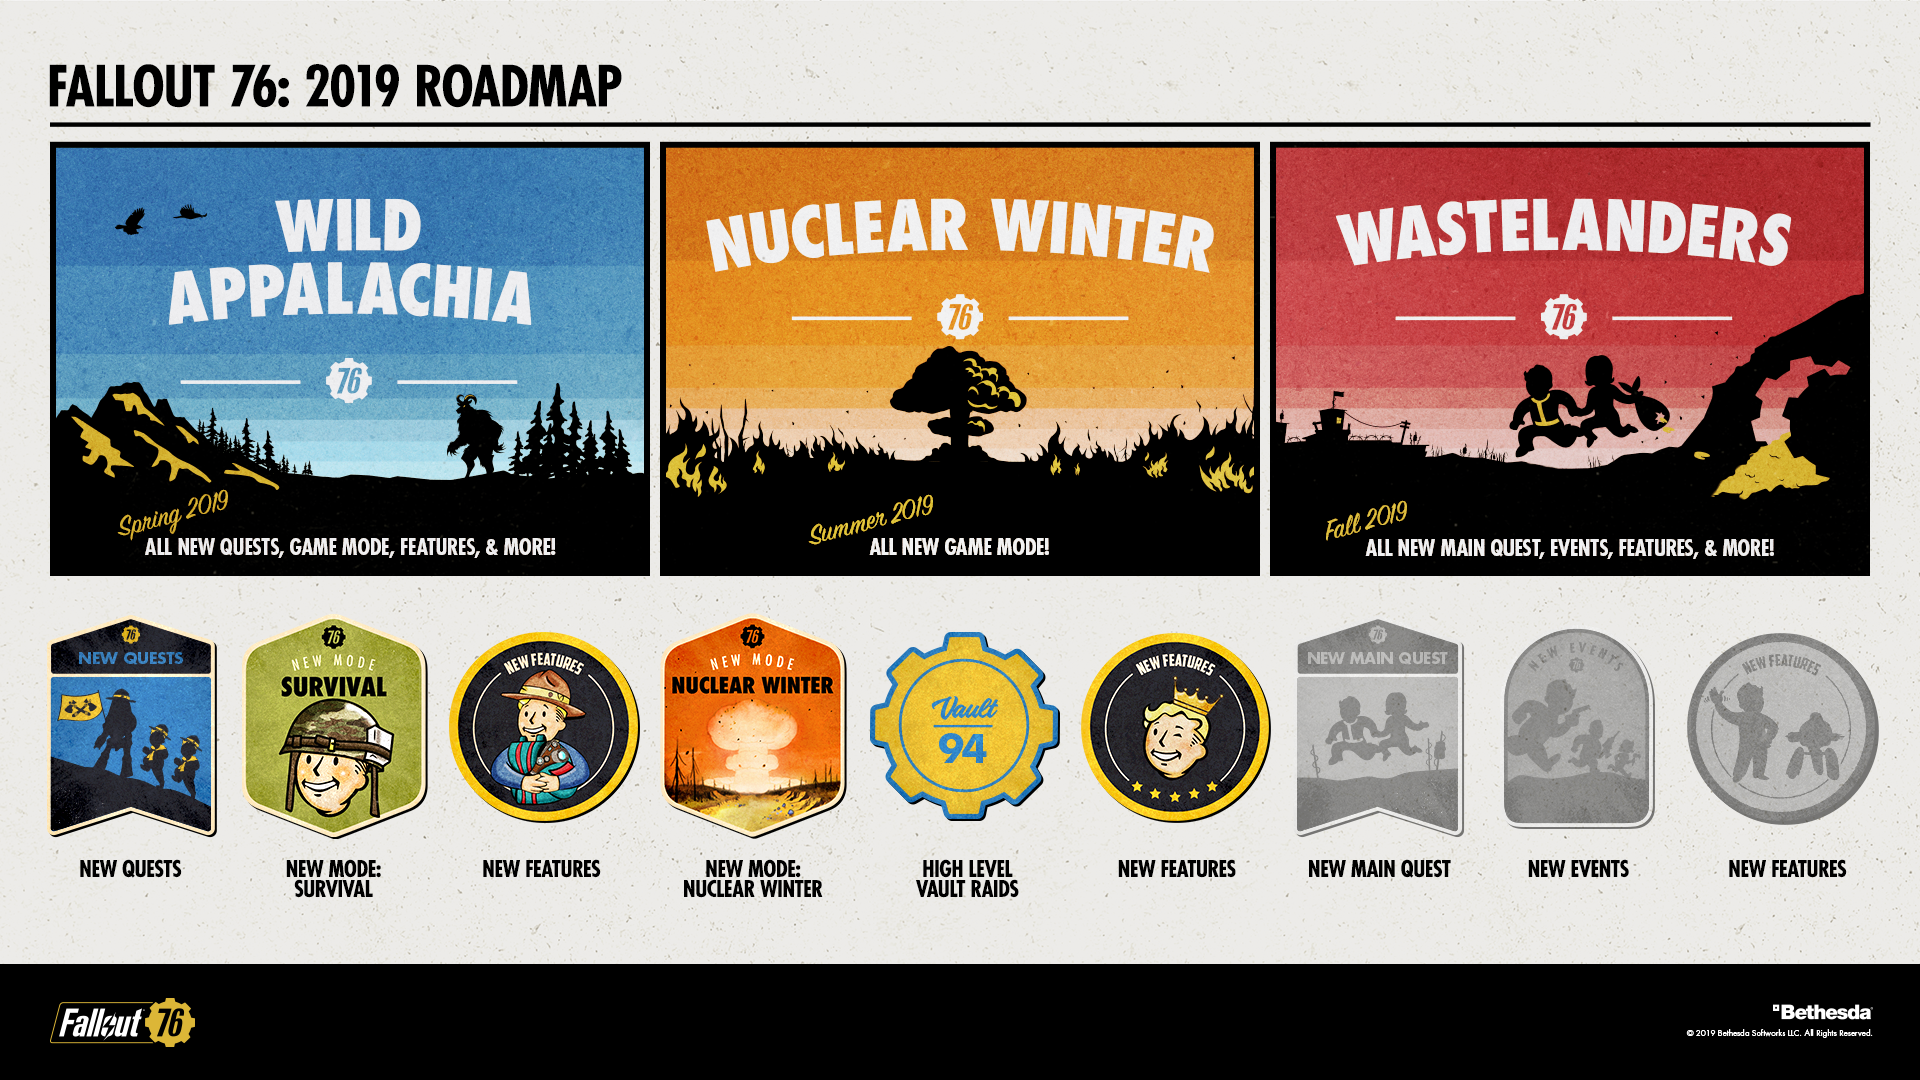 Fallout76_RoadMap_2018_02-21_FINAL.PNG